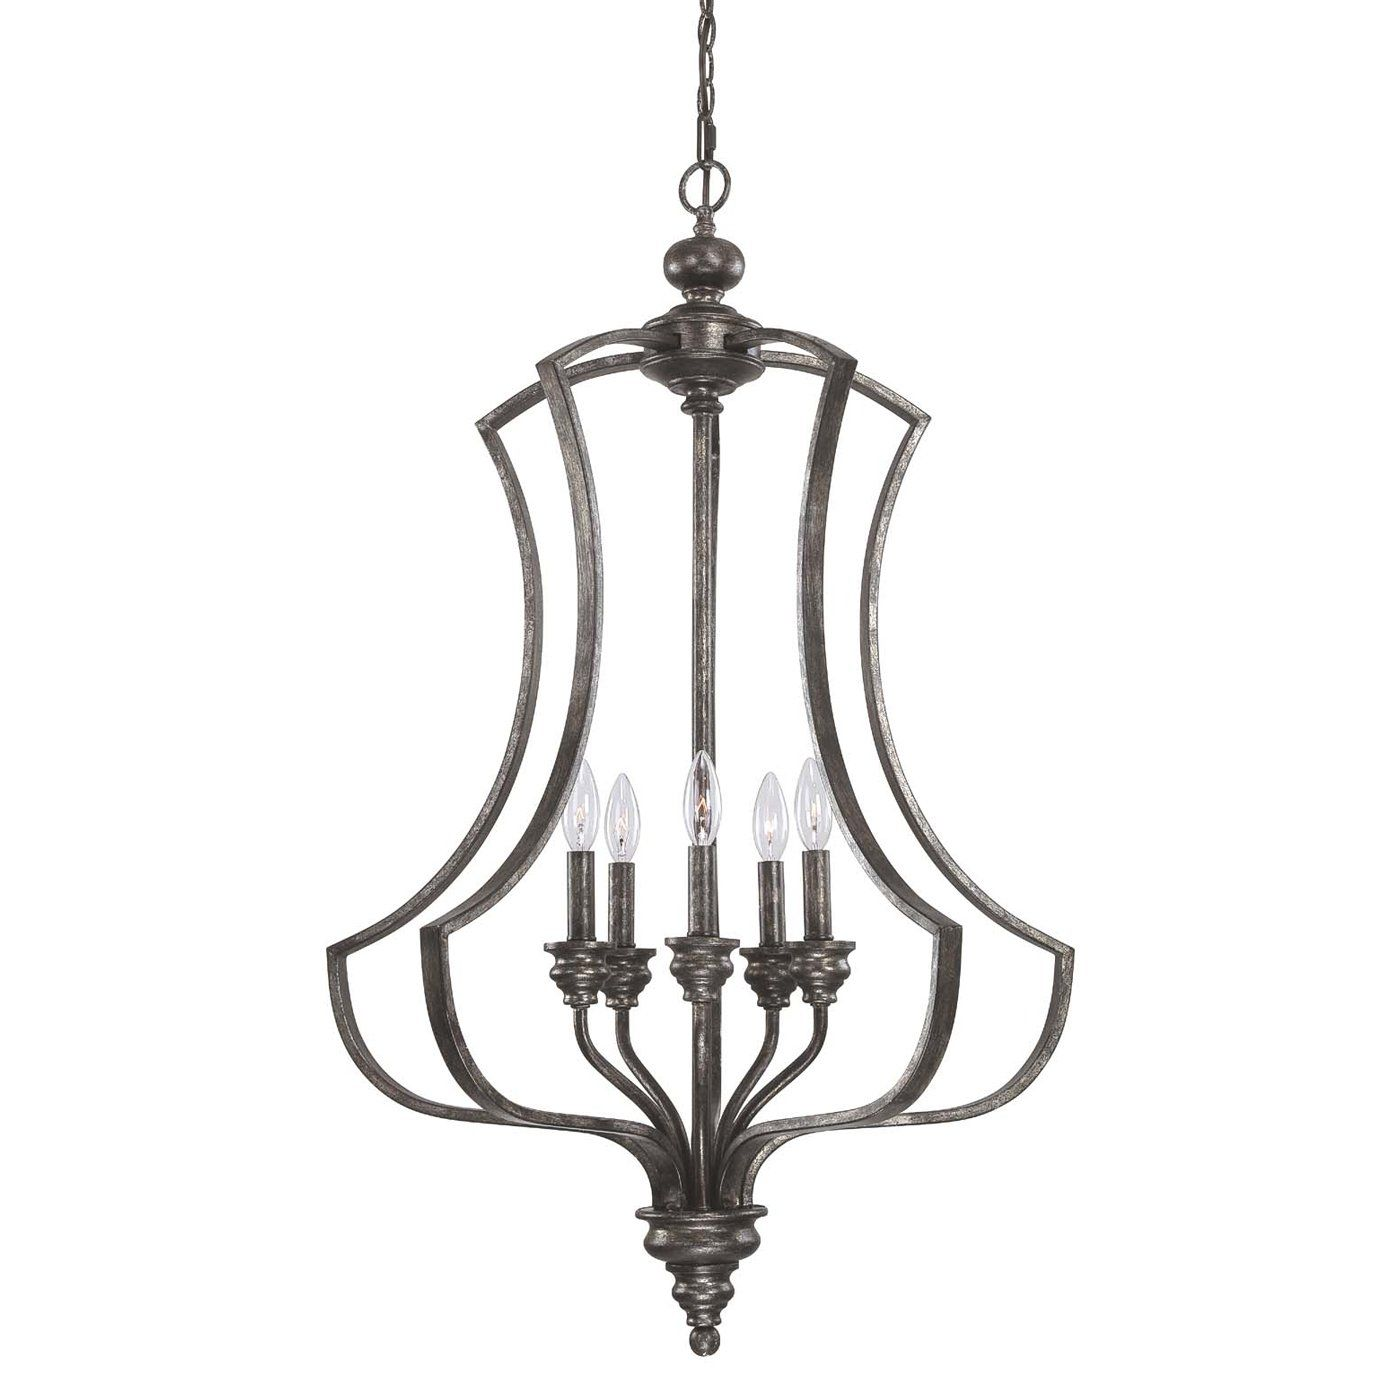 Jeremiah Lighting Tm 5 Light Benton Foyer Light